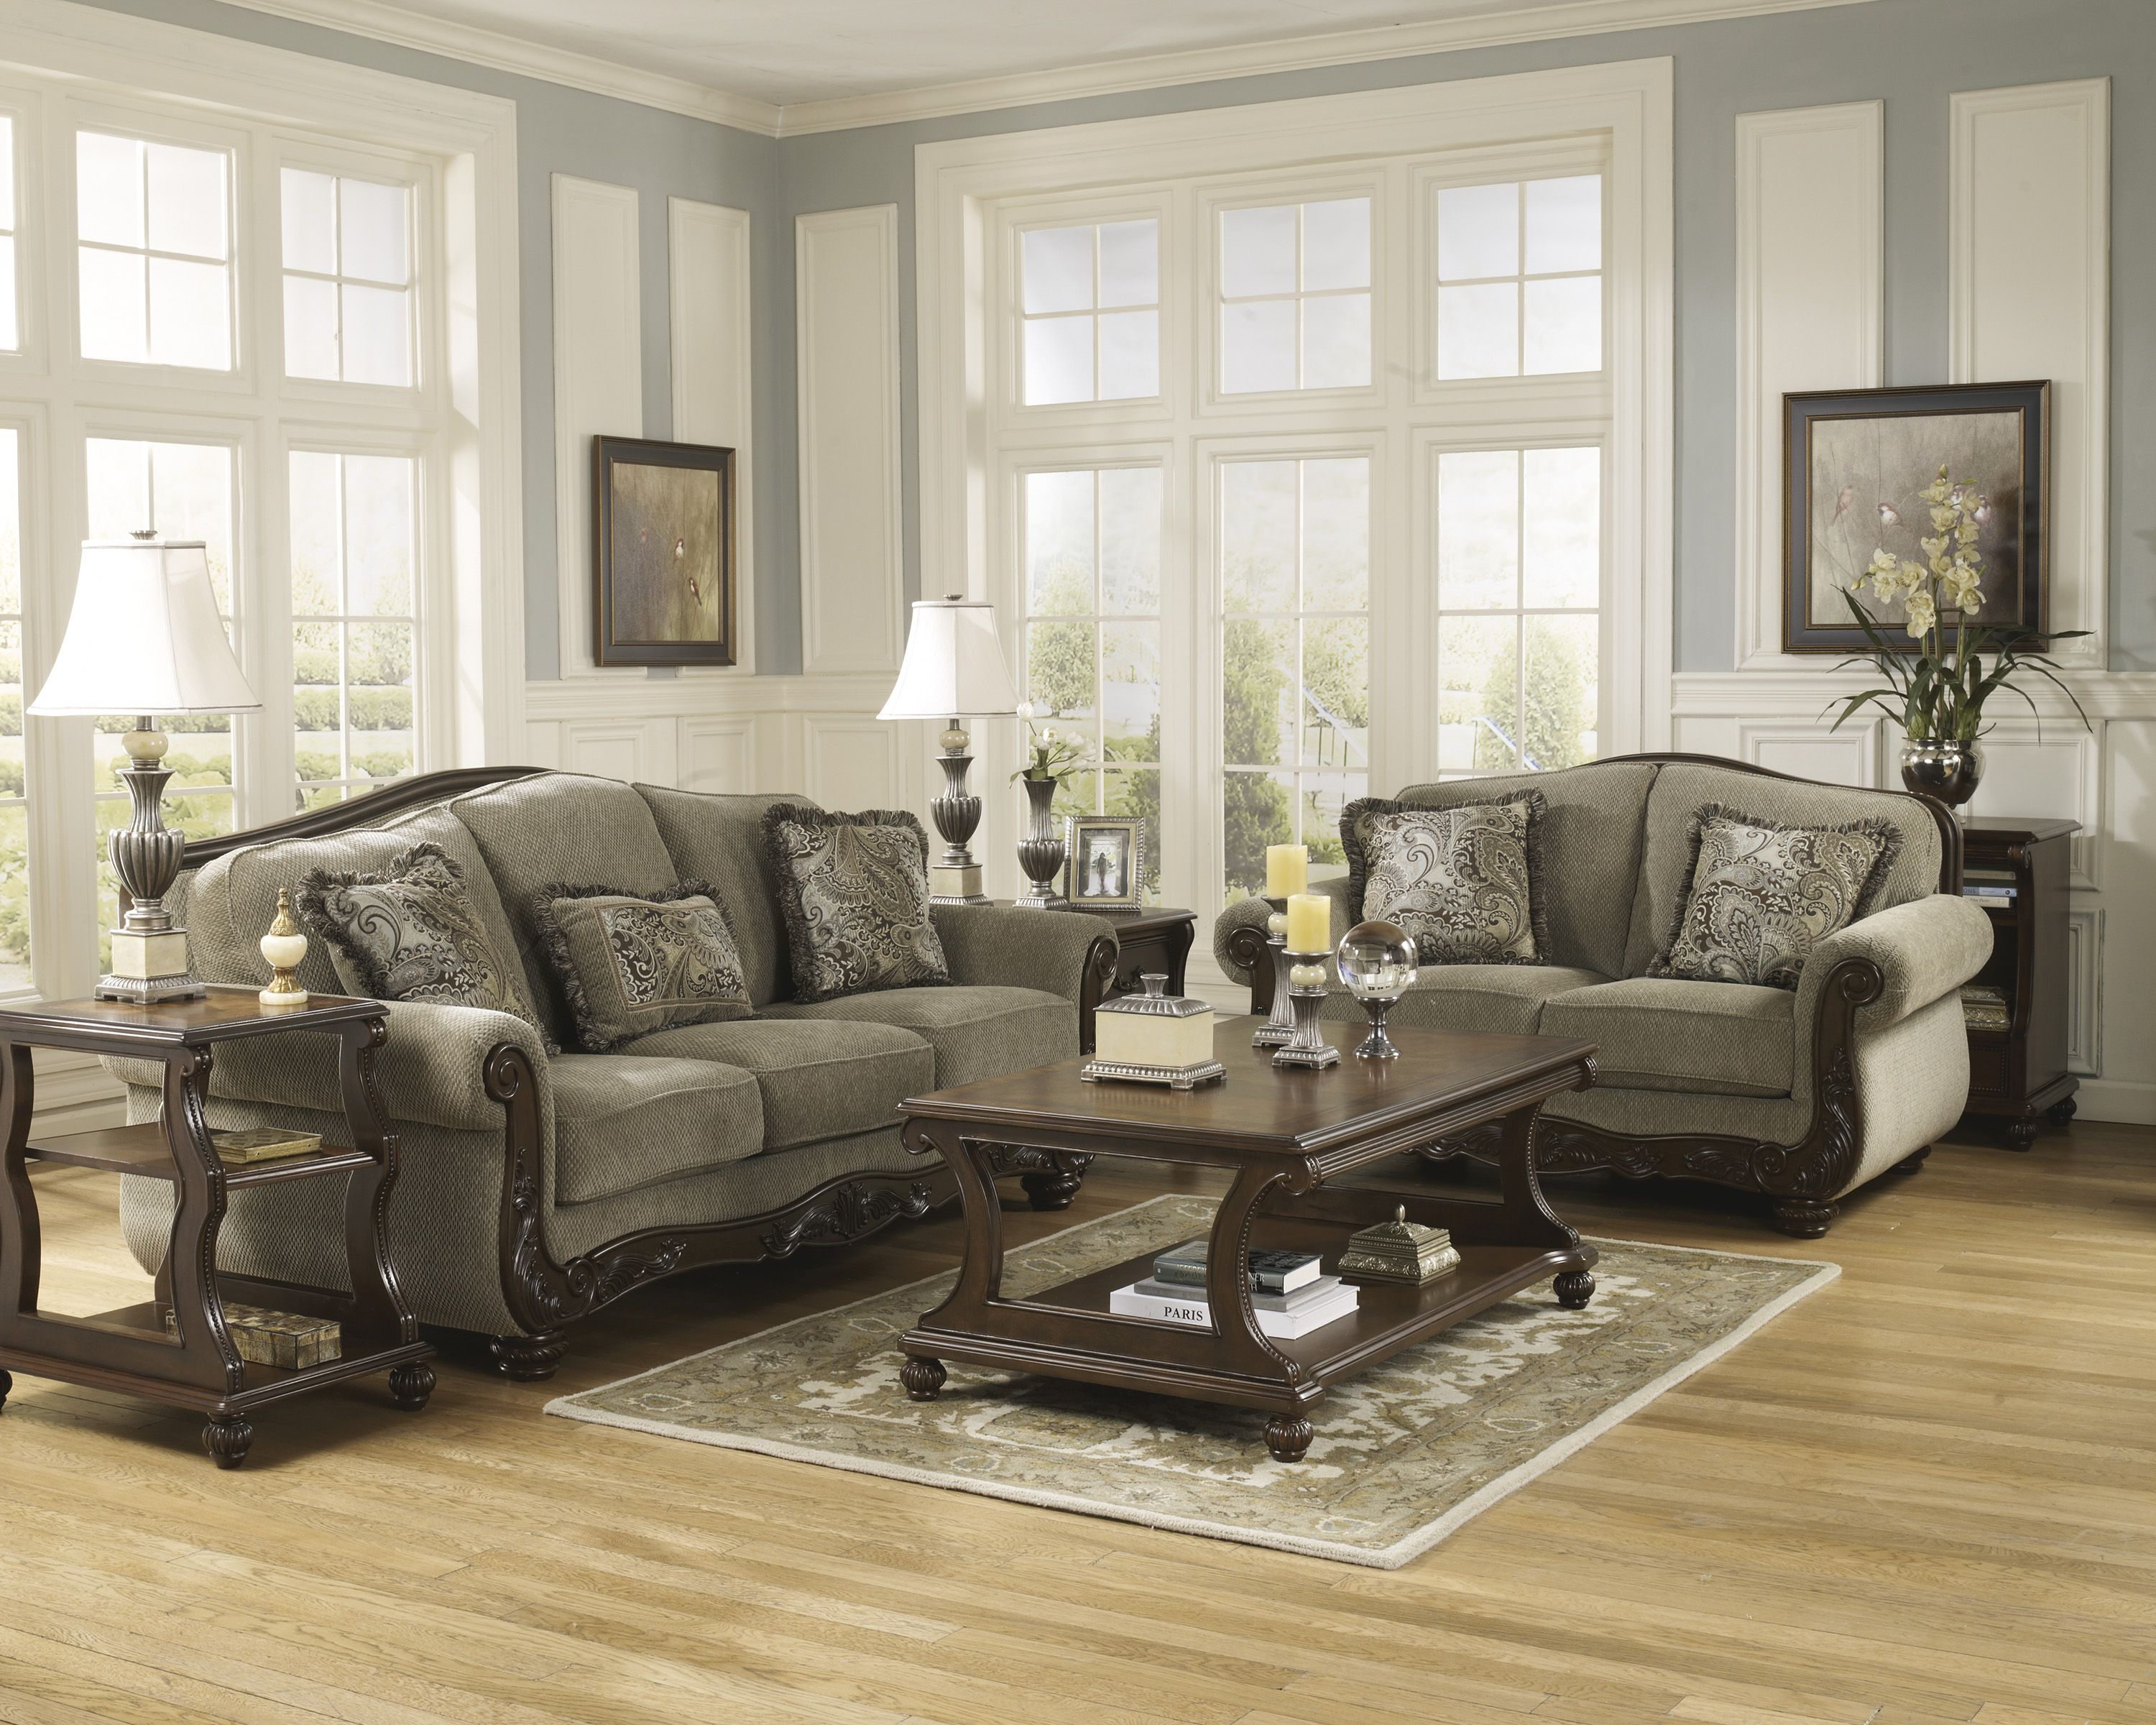 Buy signature design by ashley 5730038 5730035 living room sets online trusted since 1951